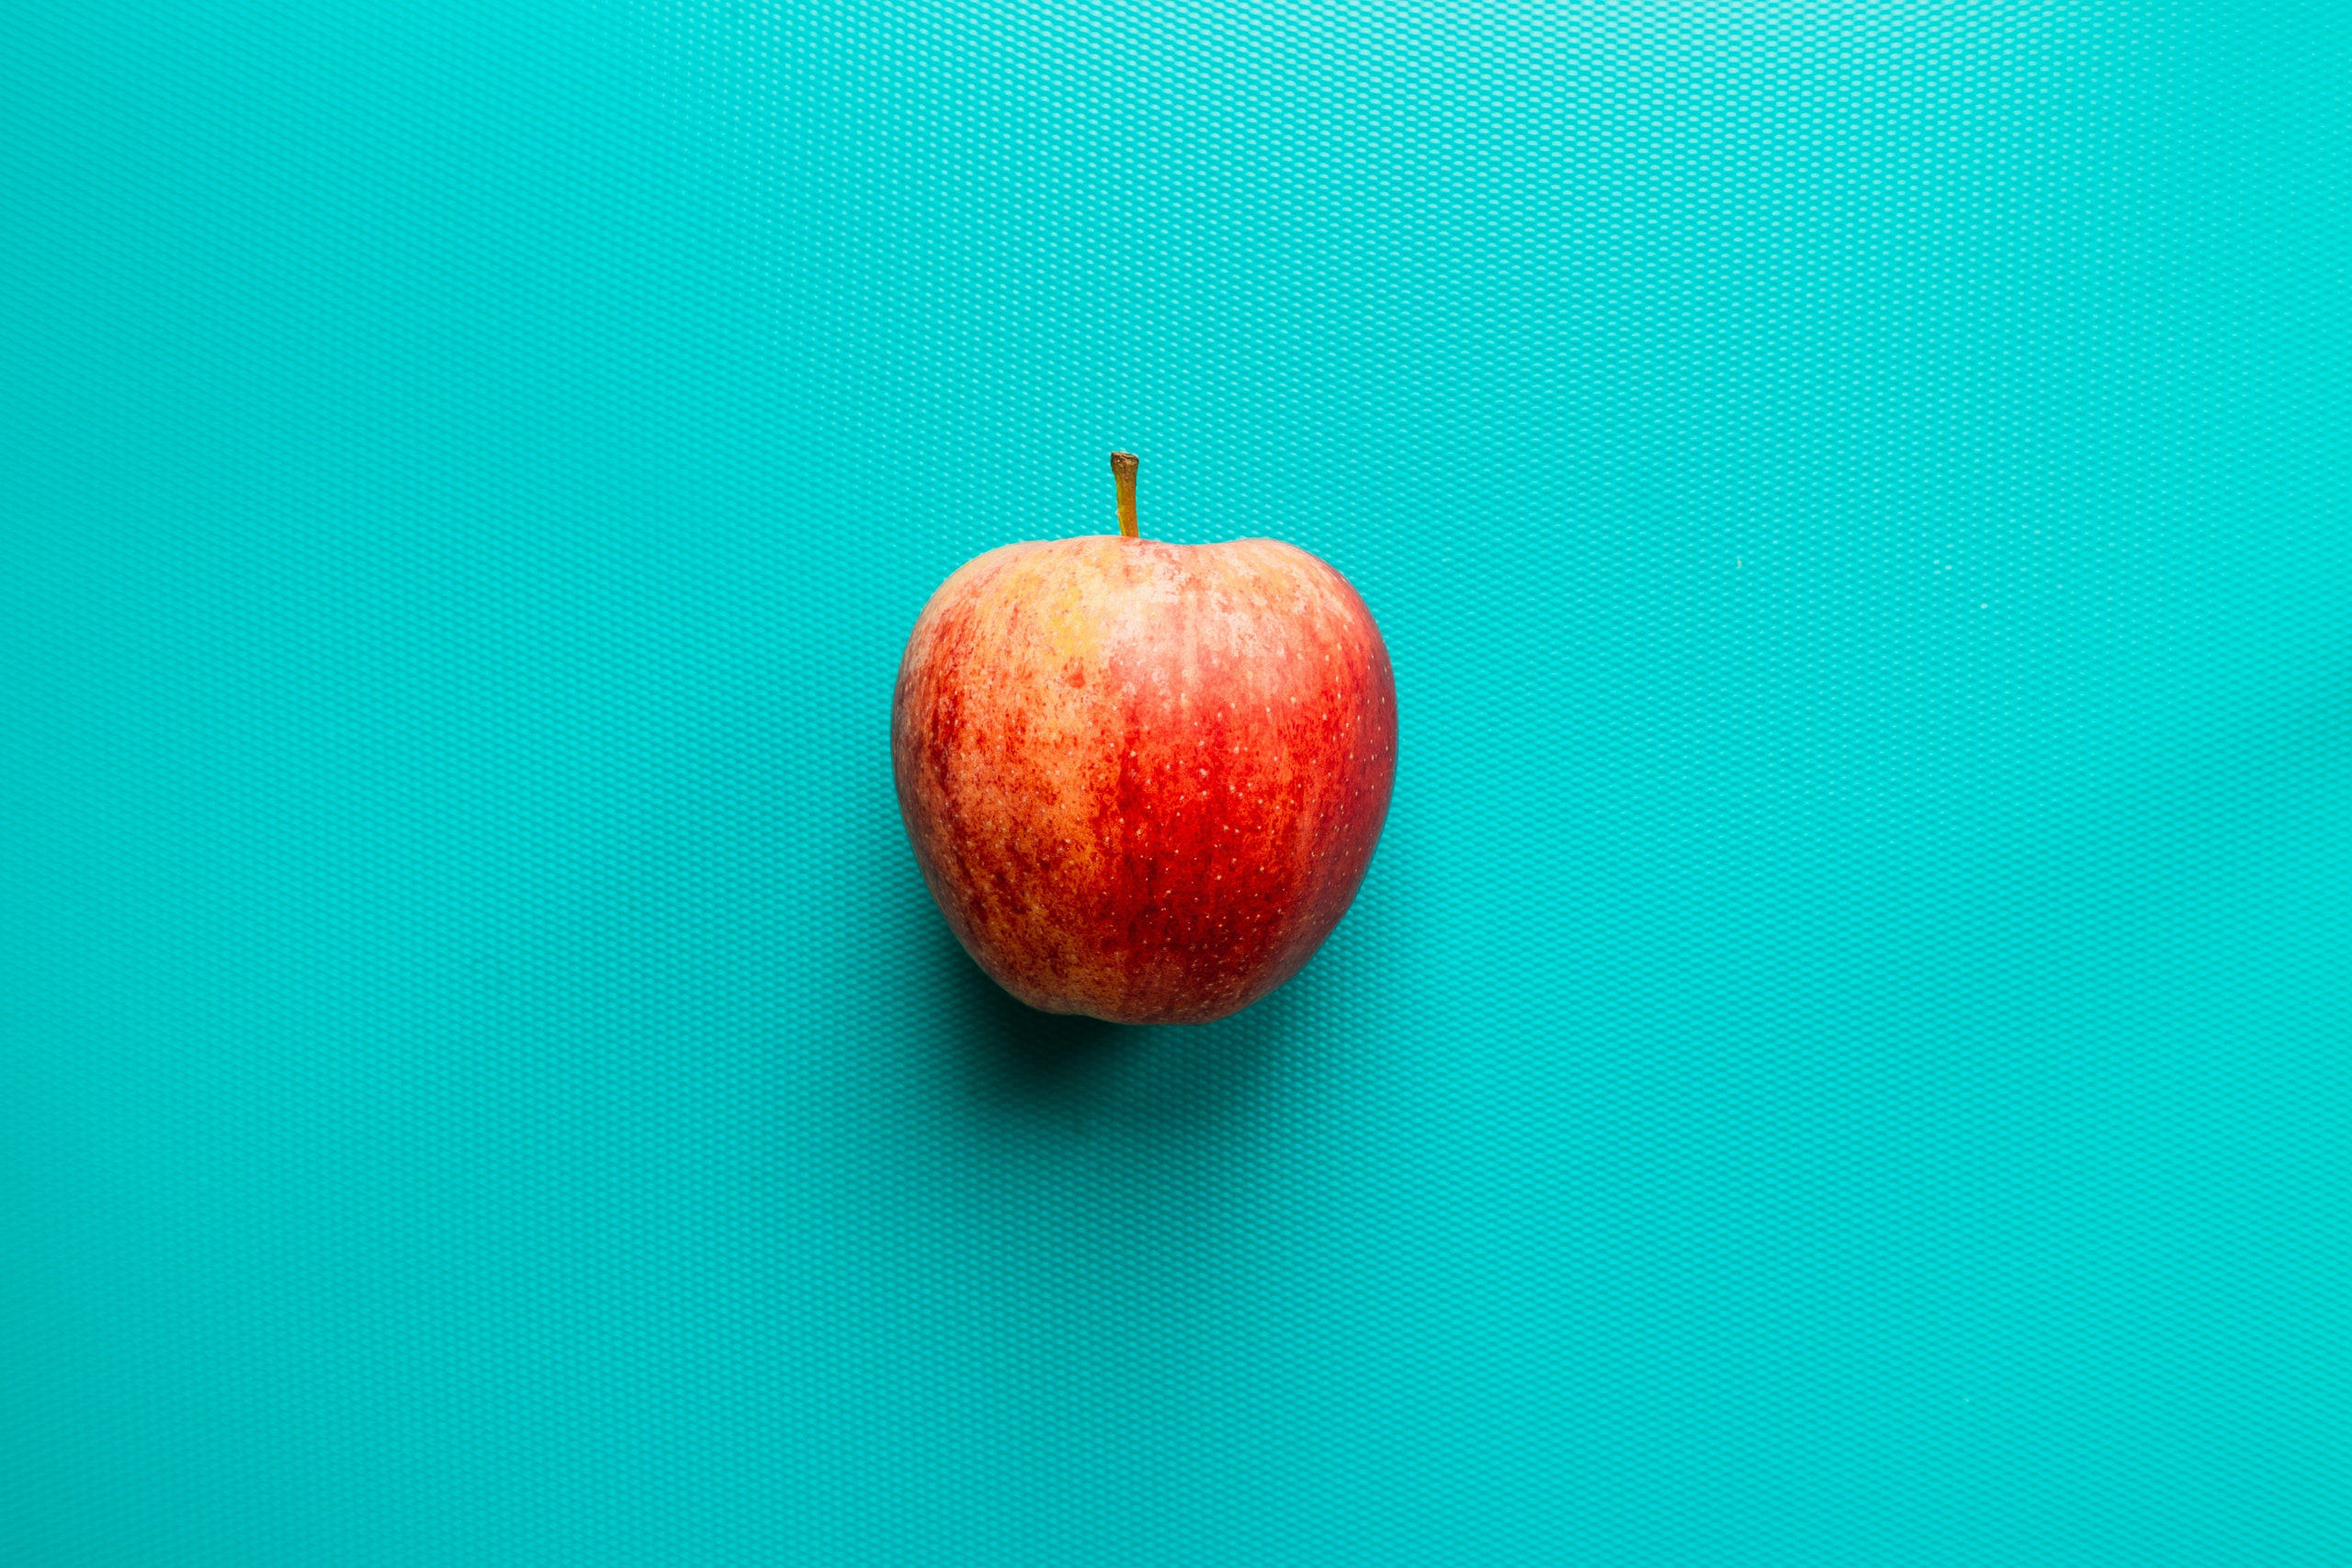 WordPress and Apple - What's Behind the Drama?